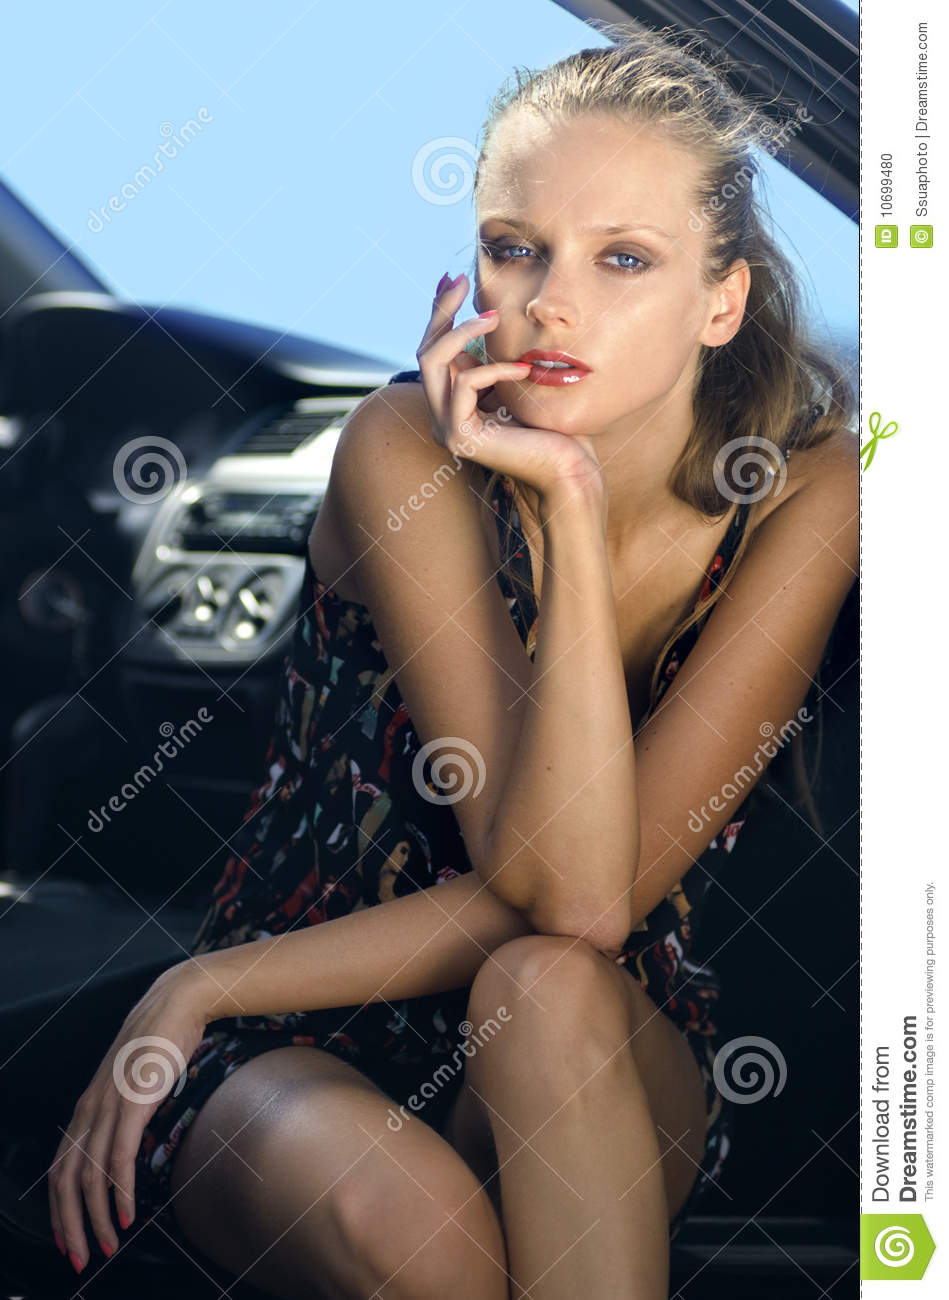 Woman in the black car